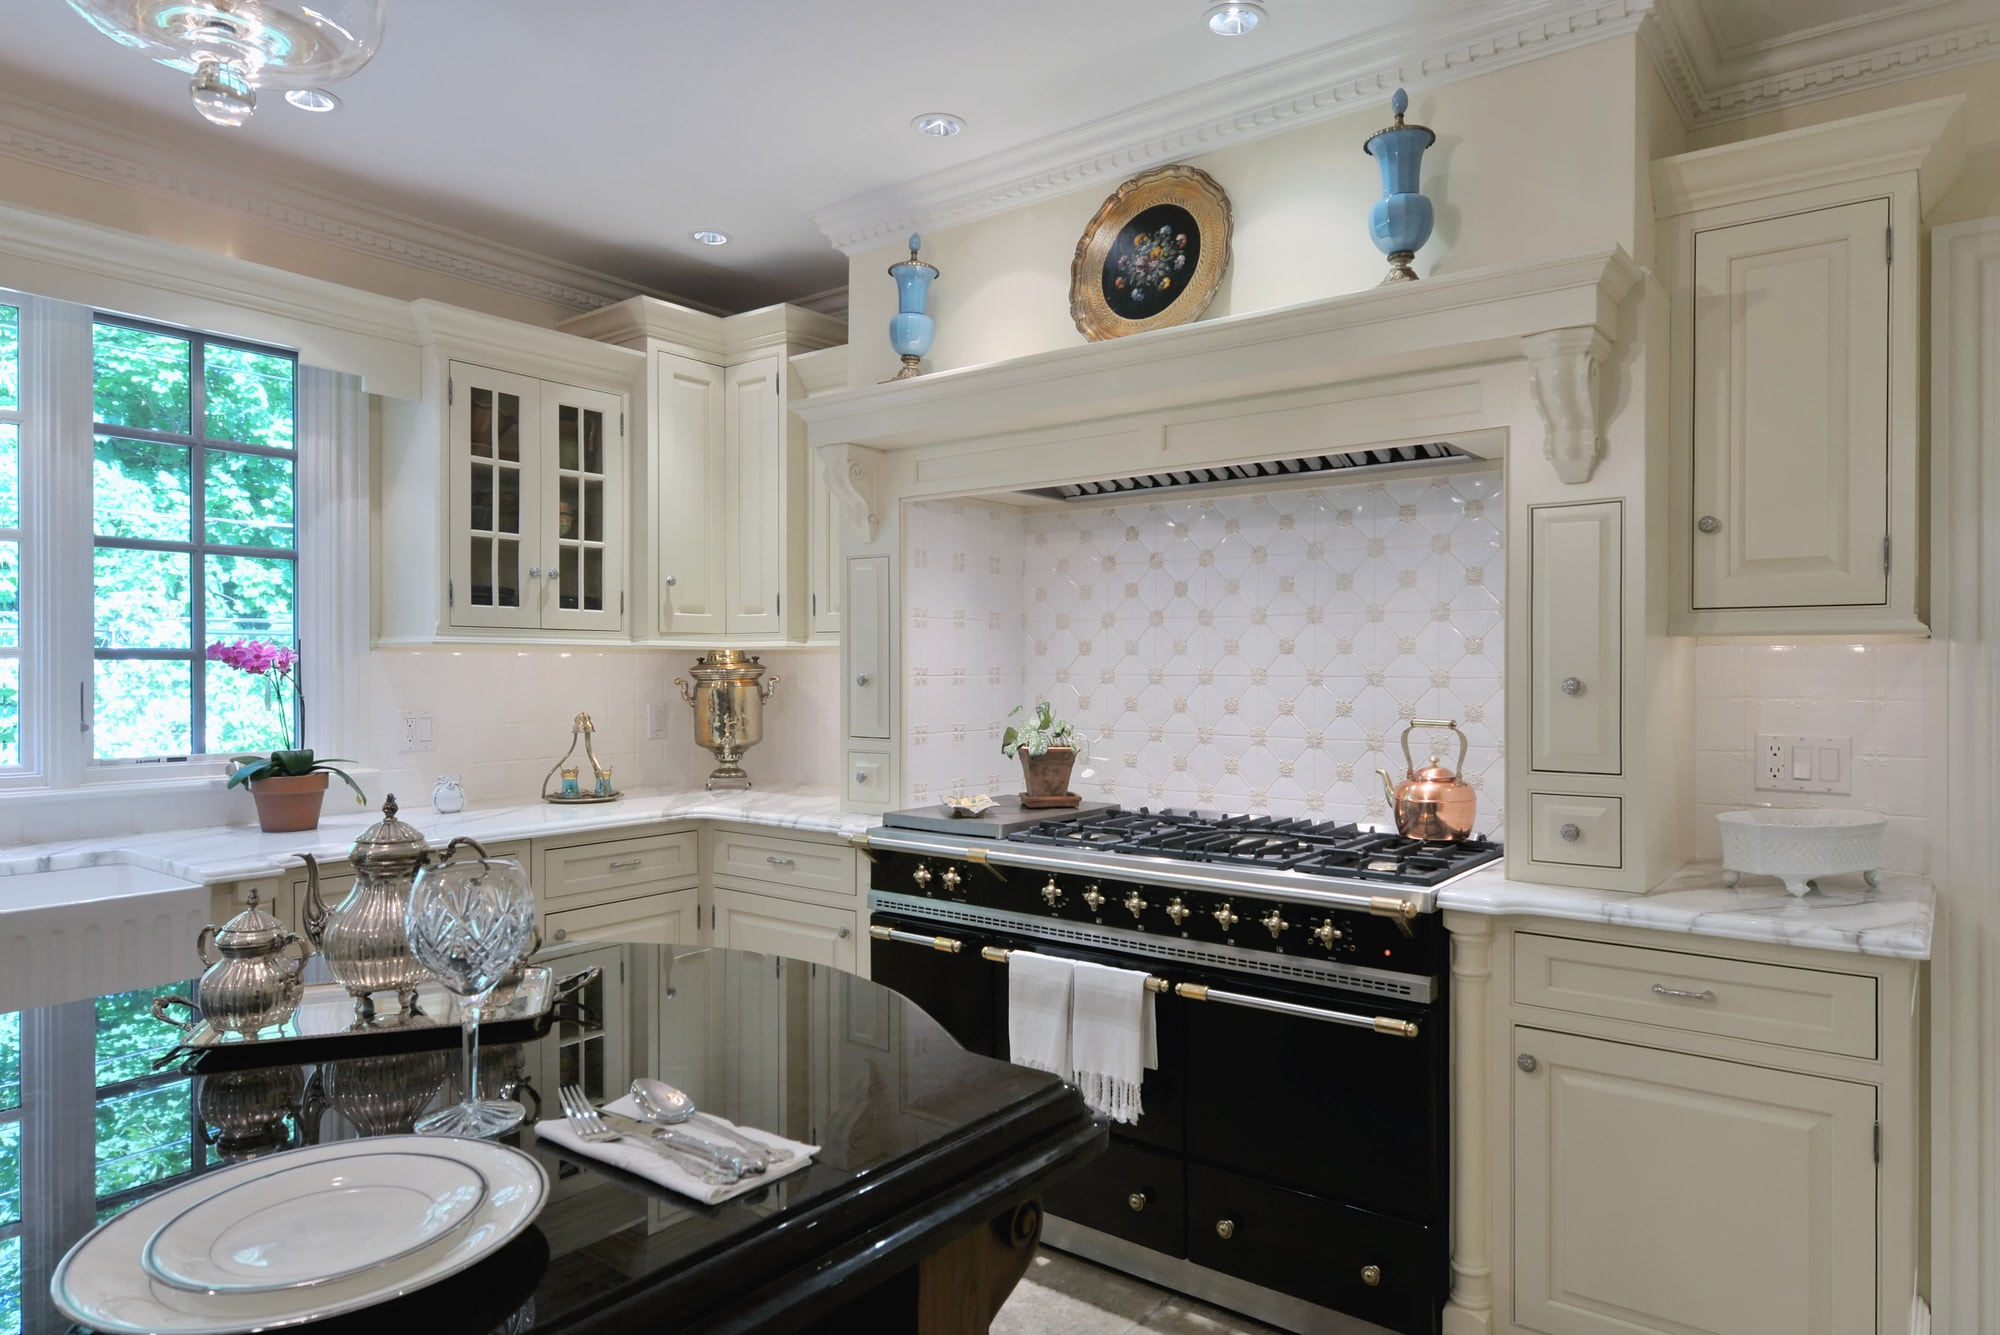 Traditional style kitchen with black and glossy countertop